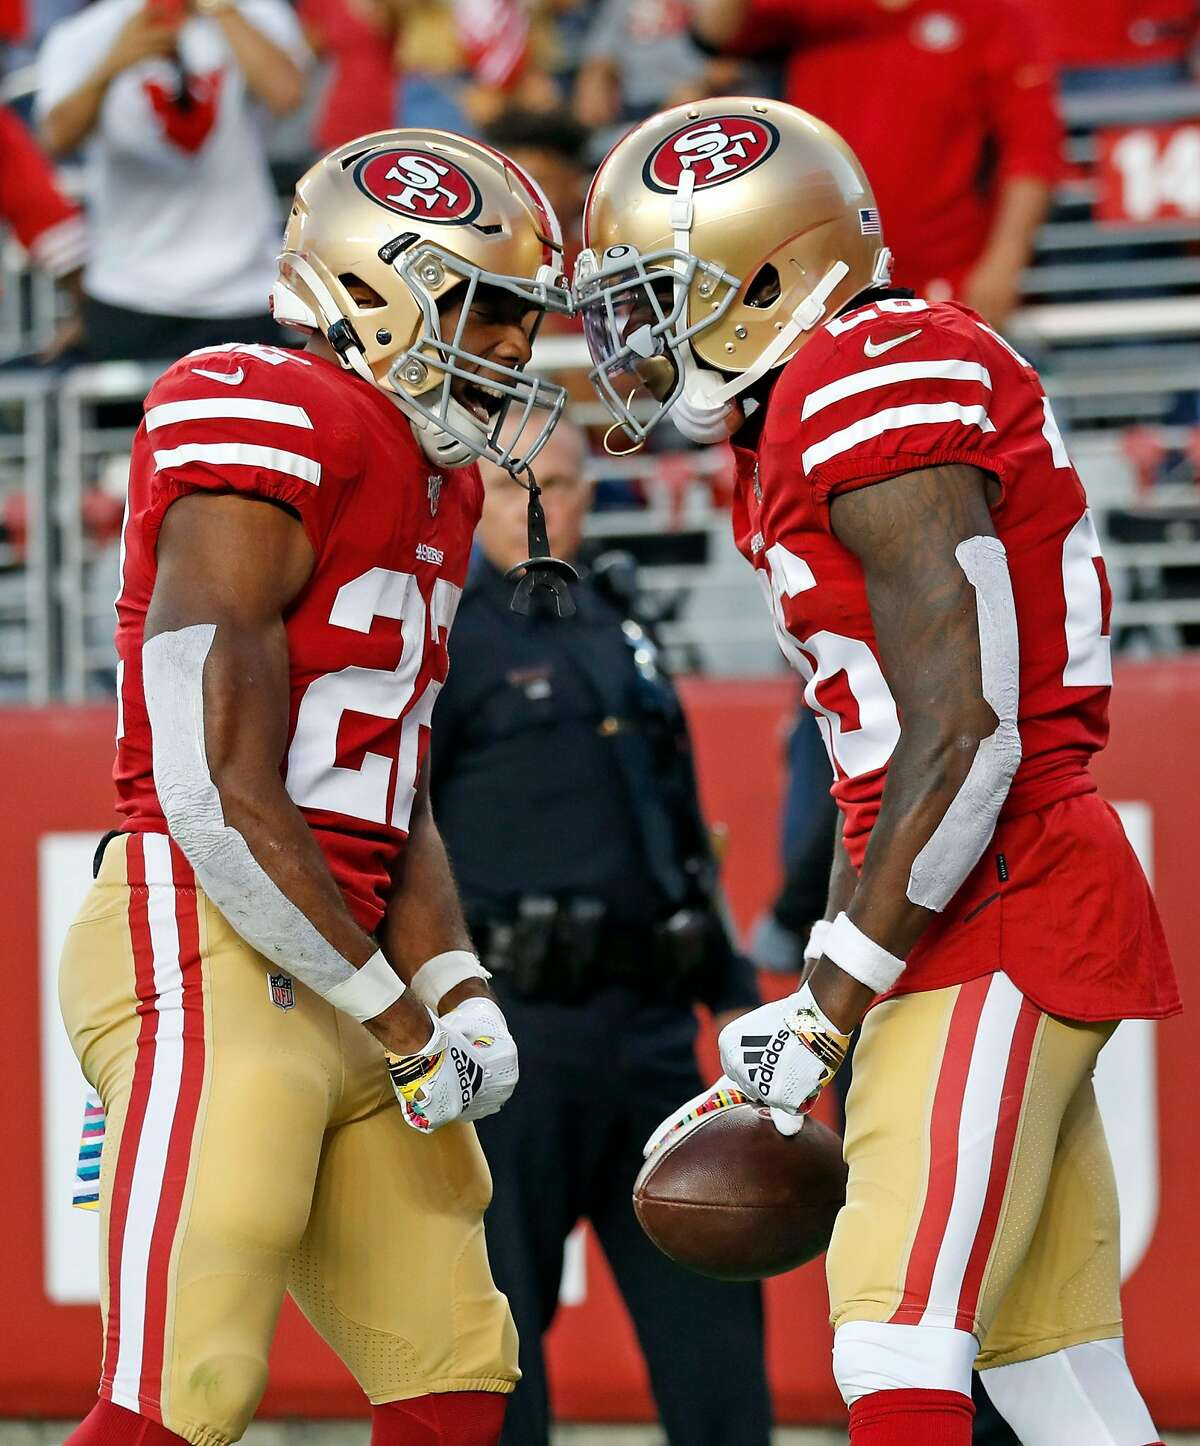 San Francisco 49ers' Matt Breida and Tevin Coleman celebrate Coleman's 2nd quarter touchdown run against Cleveland Browns during NFL game at Levi's Stadium in Santa Clara, Calif., on Monday, October 7, 2019.